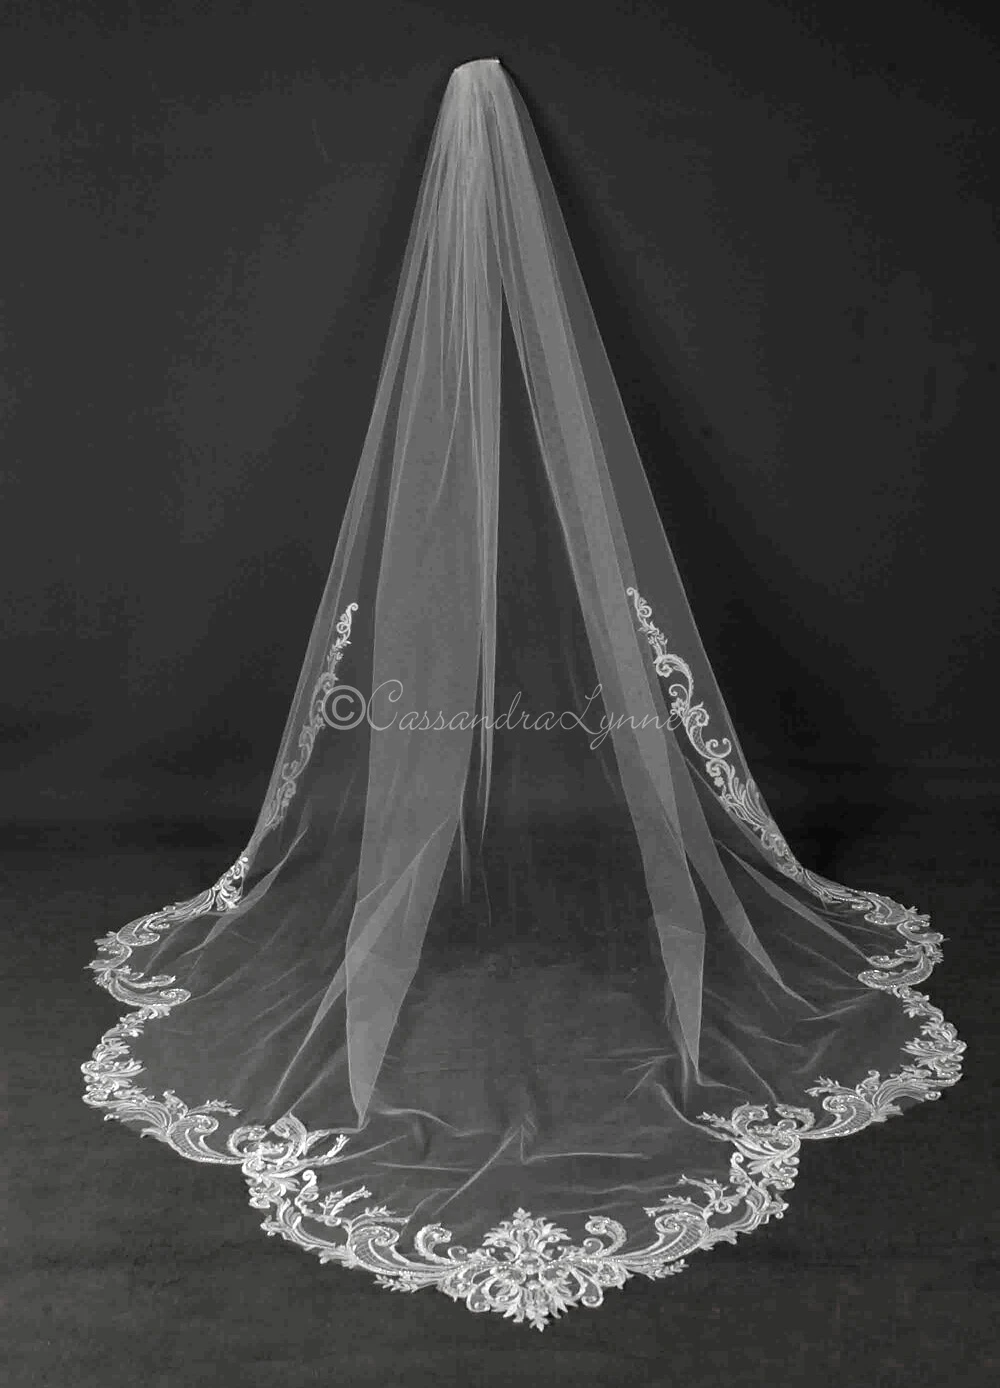 Cathedral Veil With Swirling Beaded Lace In 2020 Wedding Veils Lace Cathedral Veil Cathedral Wedding Veils